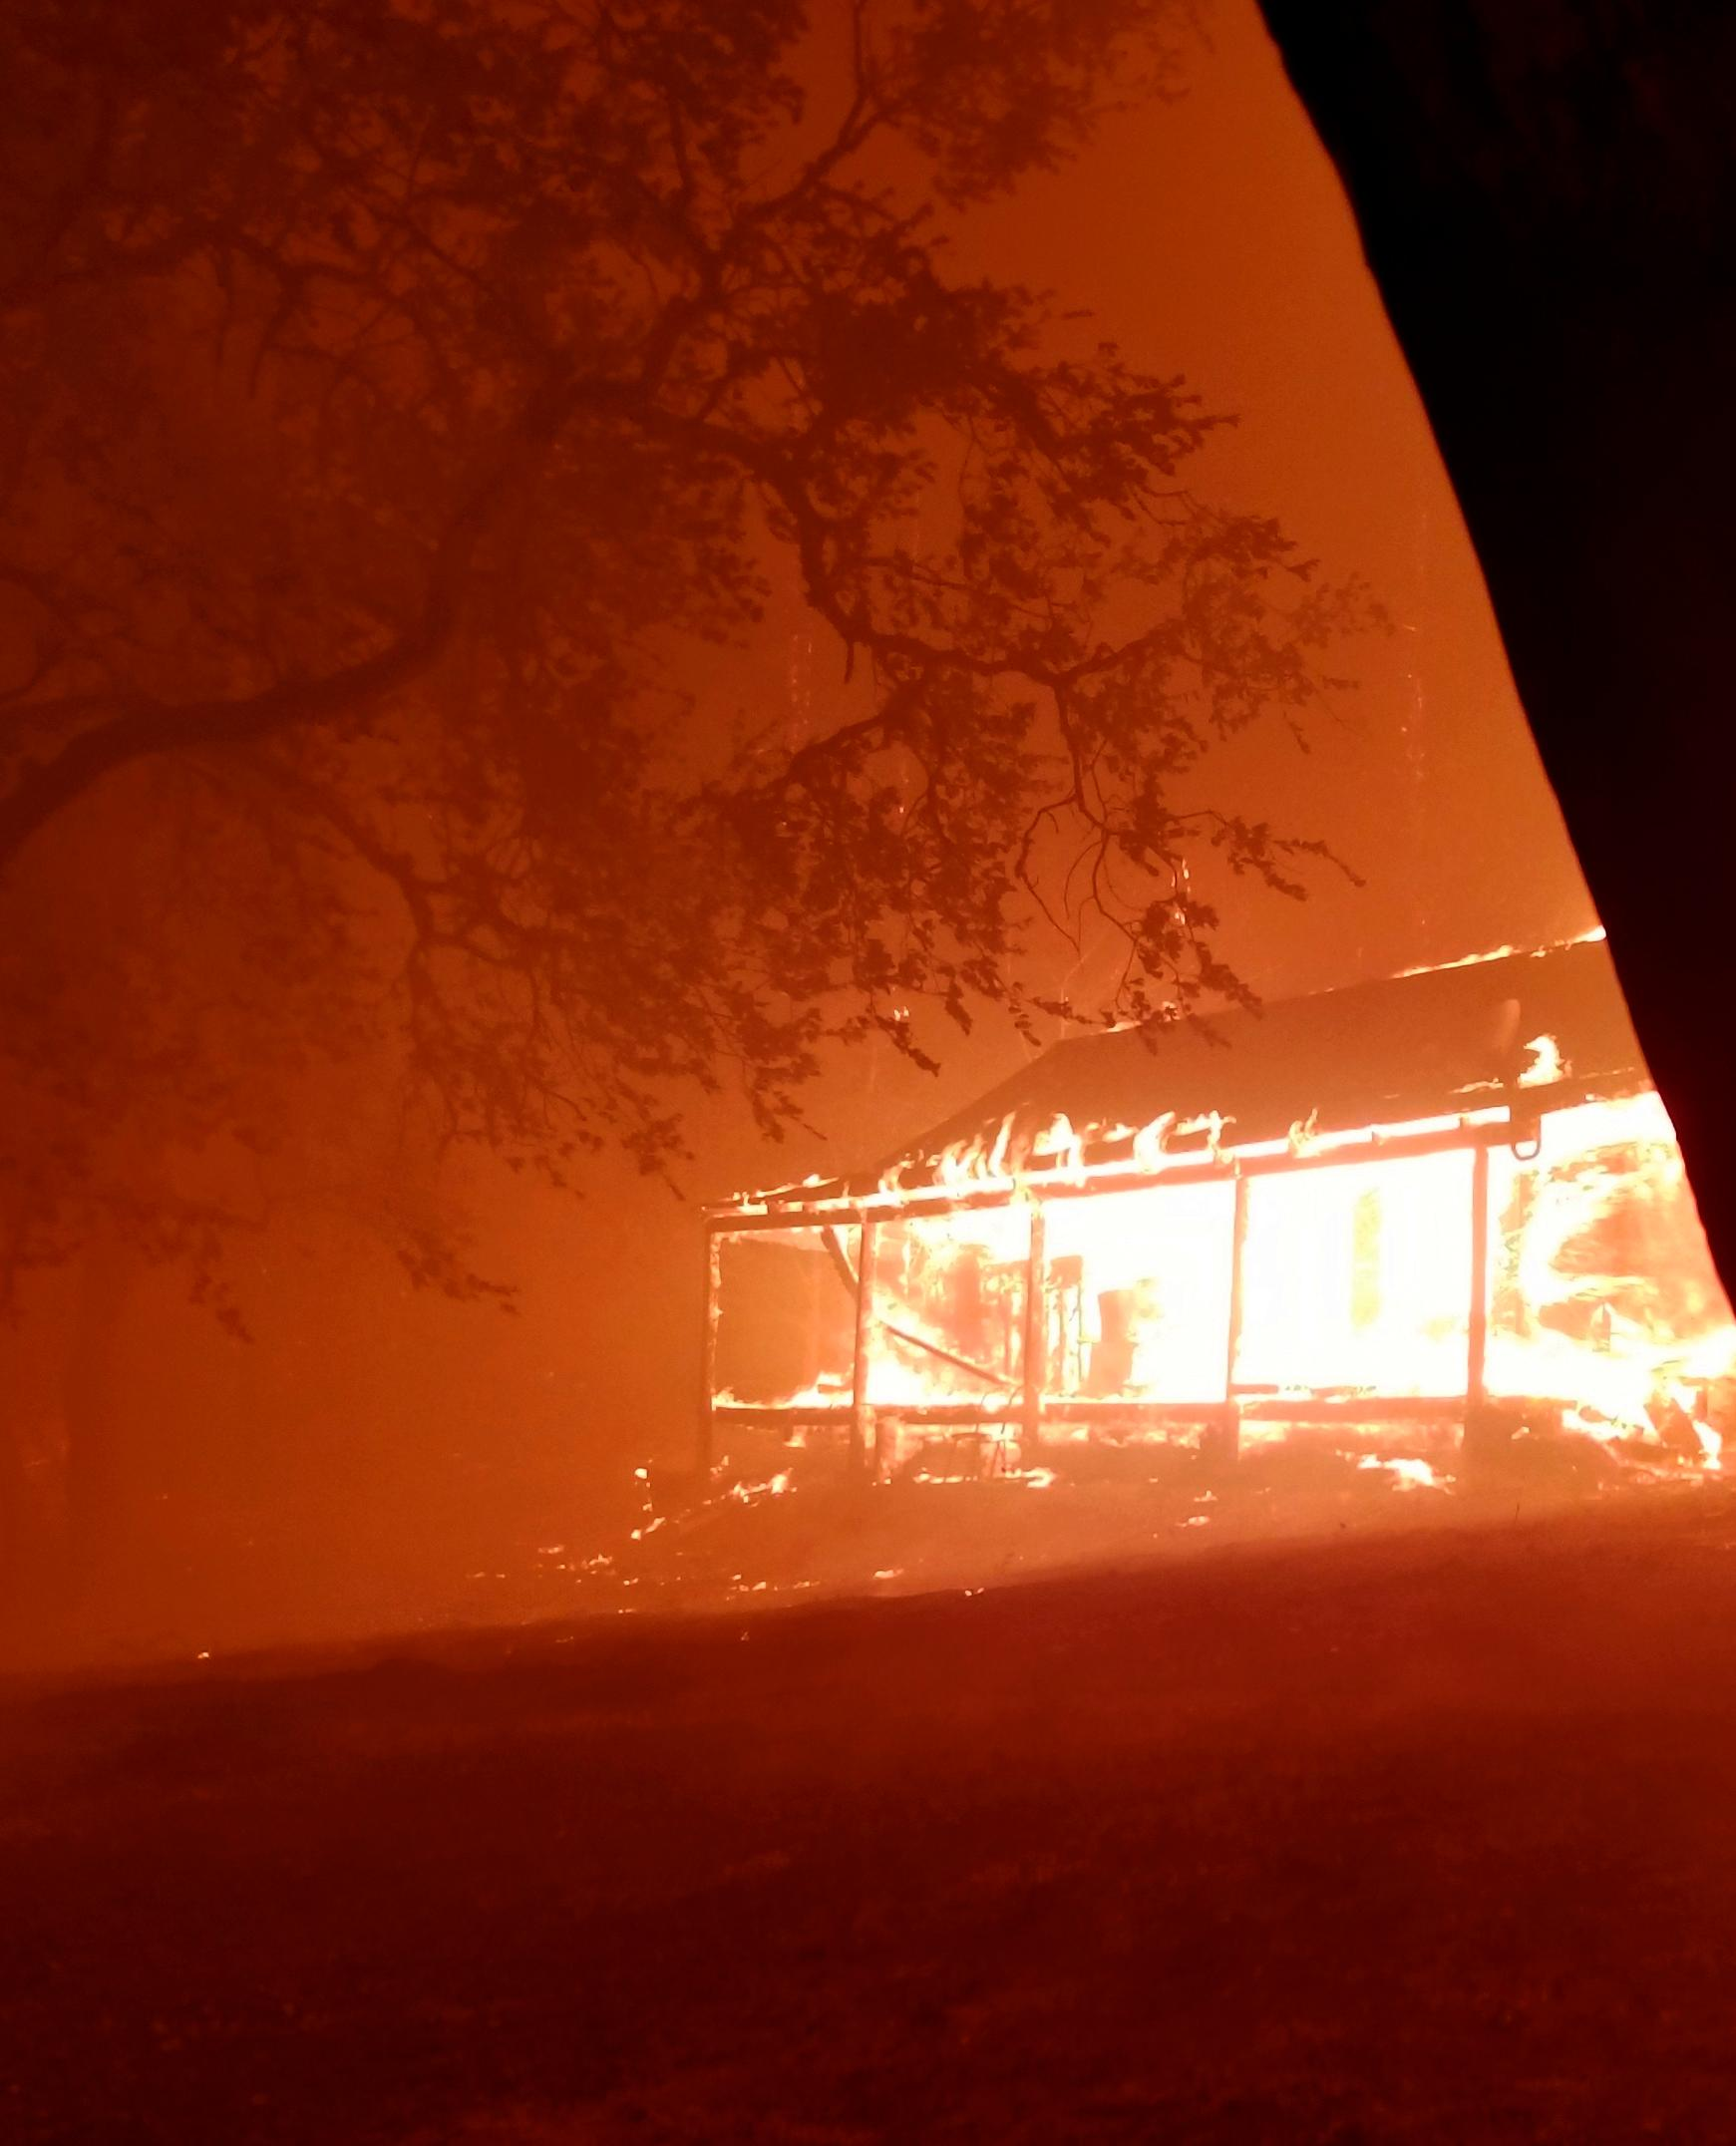 This Monday, Oct. 9, 2017, photo provided by Paul Hanssen shows his house burning in the Redwood Valley, Calif. Hanssen hid inside a portable trailer wrapped in water-soaked towels while the fast-moving wildfire tore through his mountain home. (Paul Hanssen via AP)